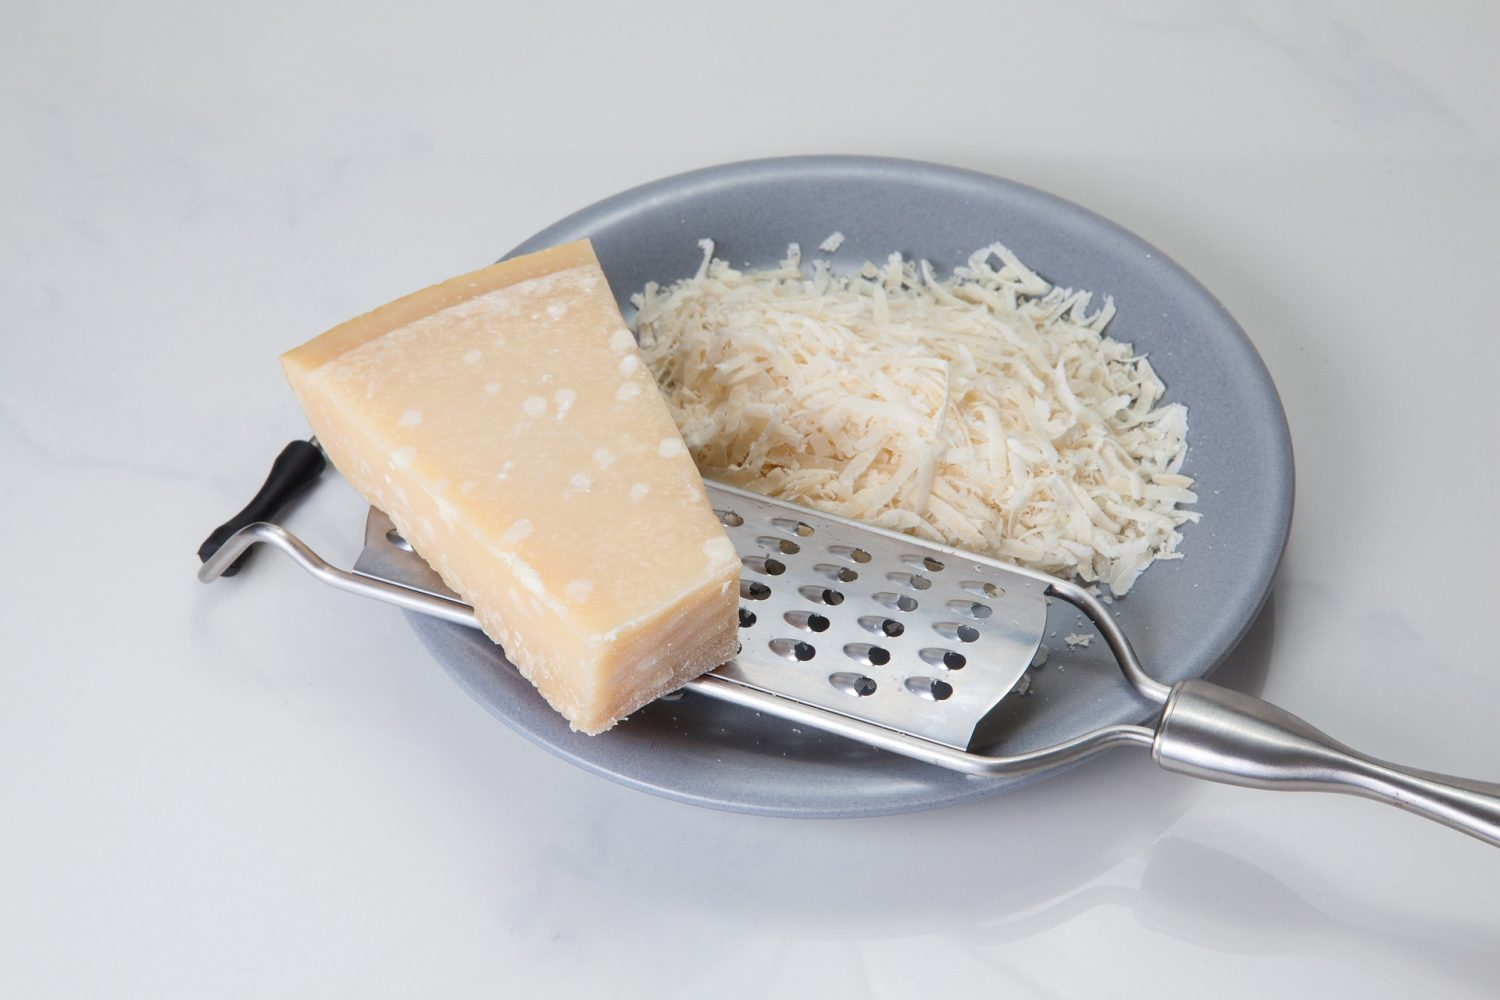 parmesan-cheese-everything-you-need-to-know